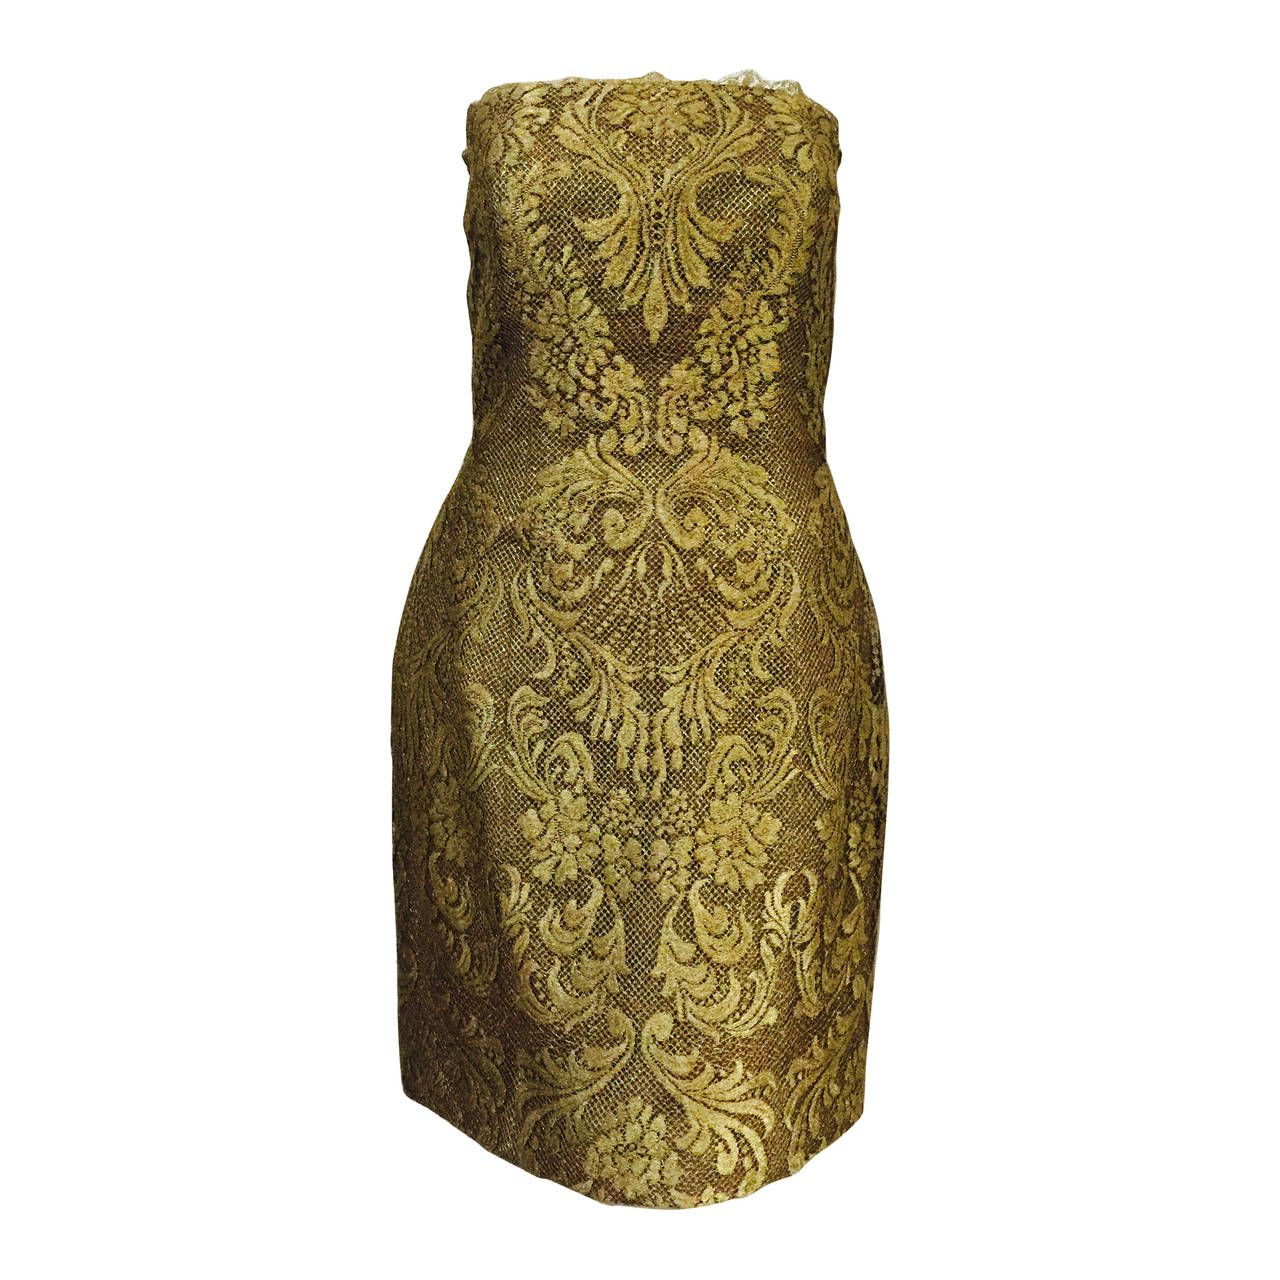 Victor Costa for Saks Fifth Avenue Strapless Old Gold Lace Dress | 1stdibs.com